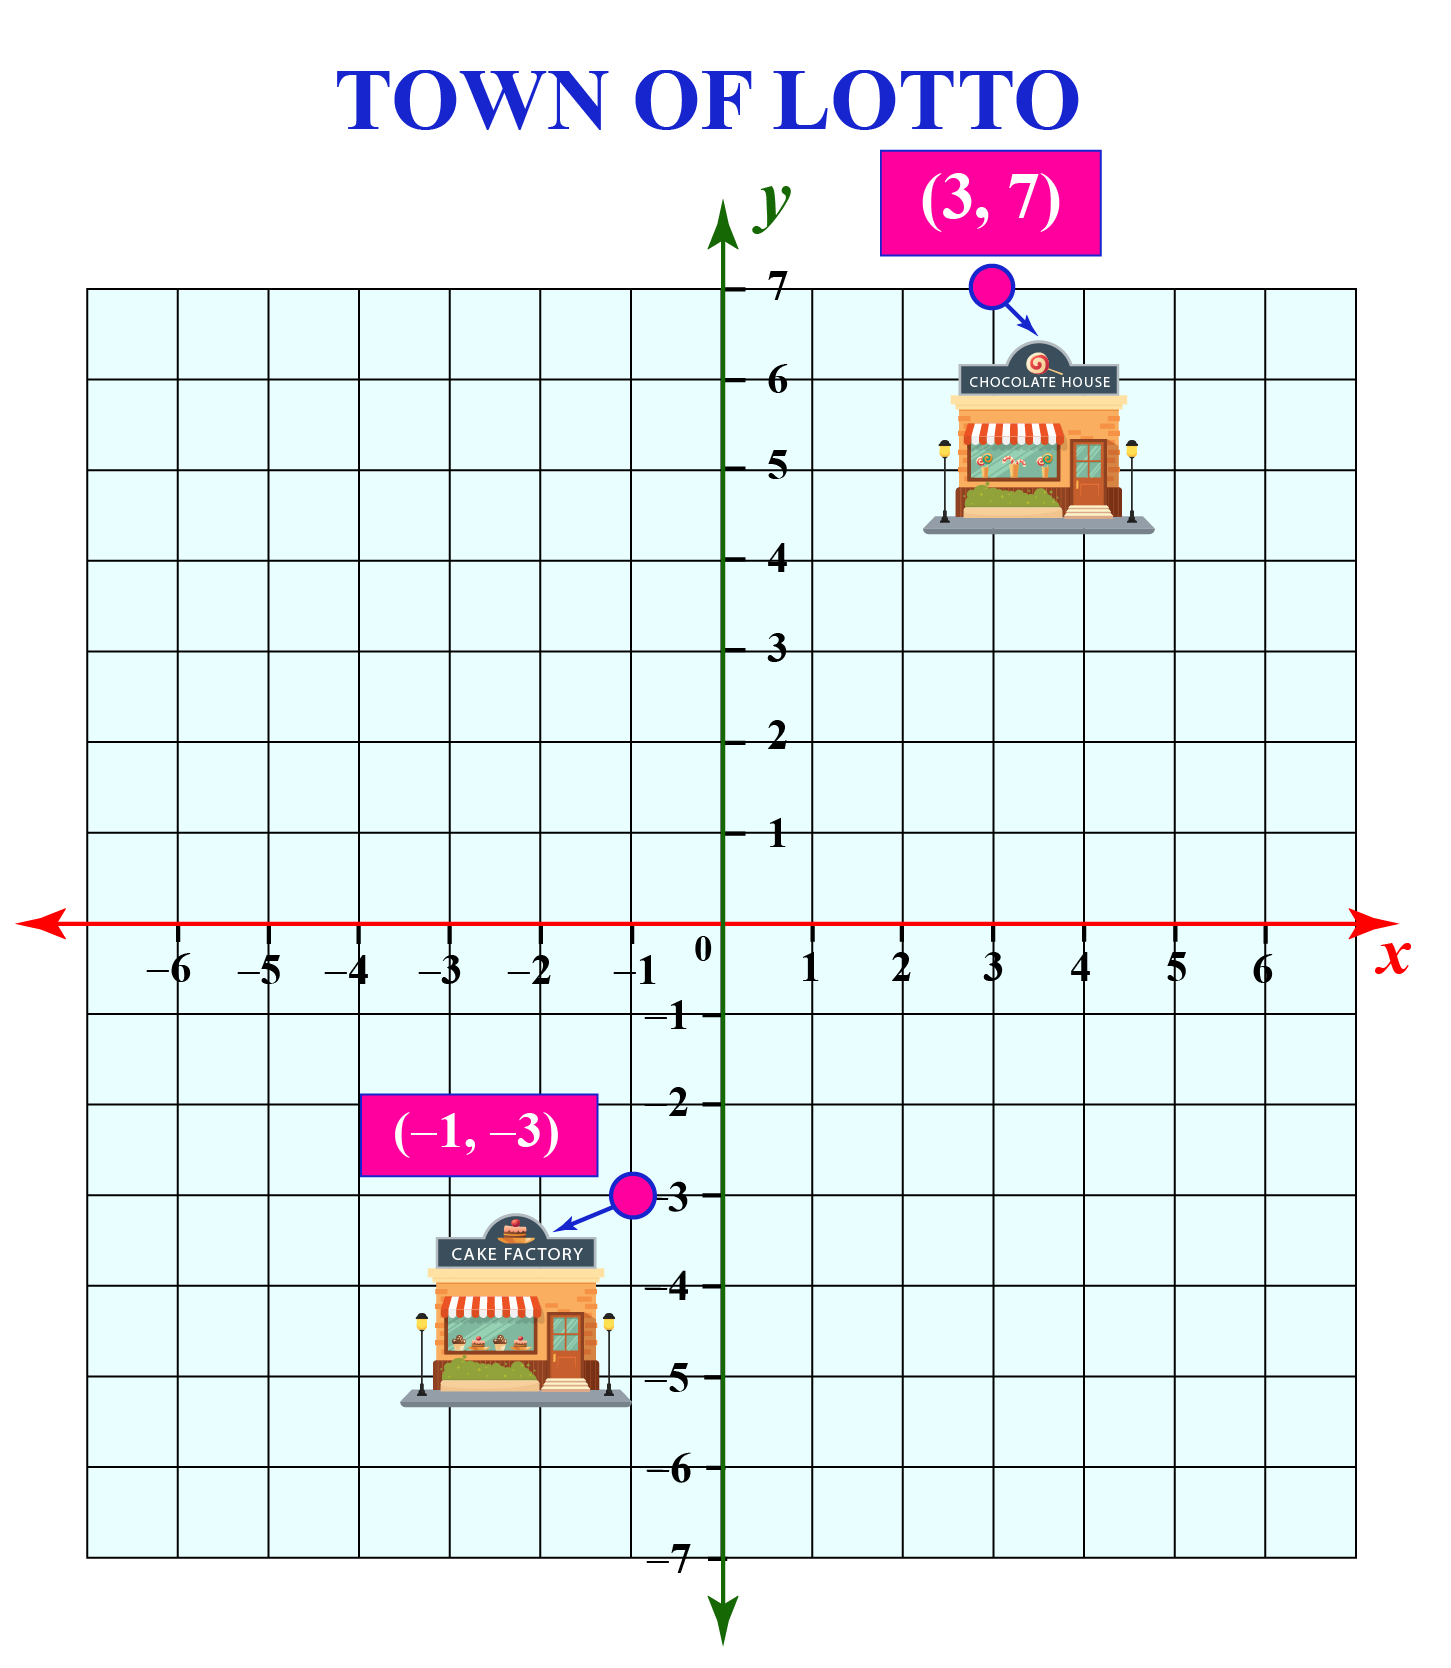 The map of town of Lotto